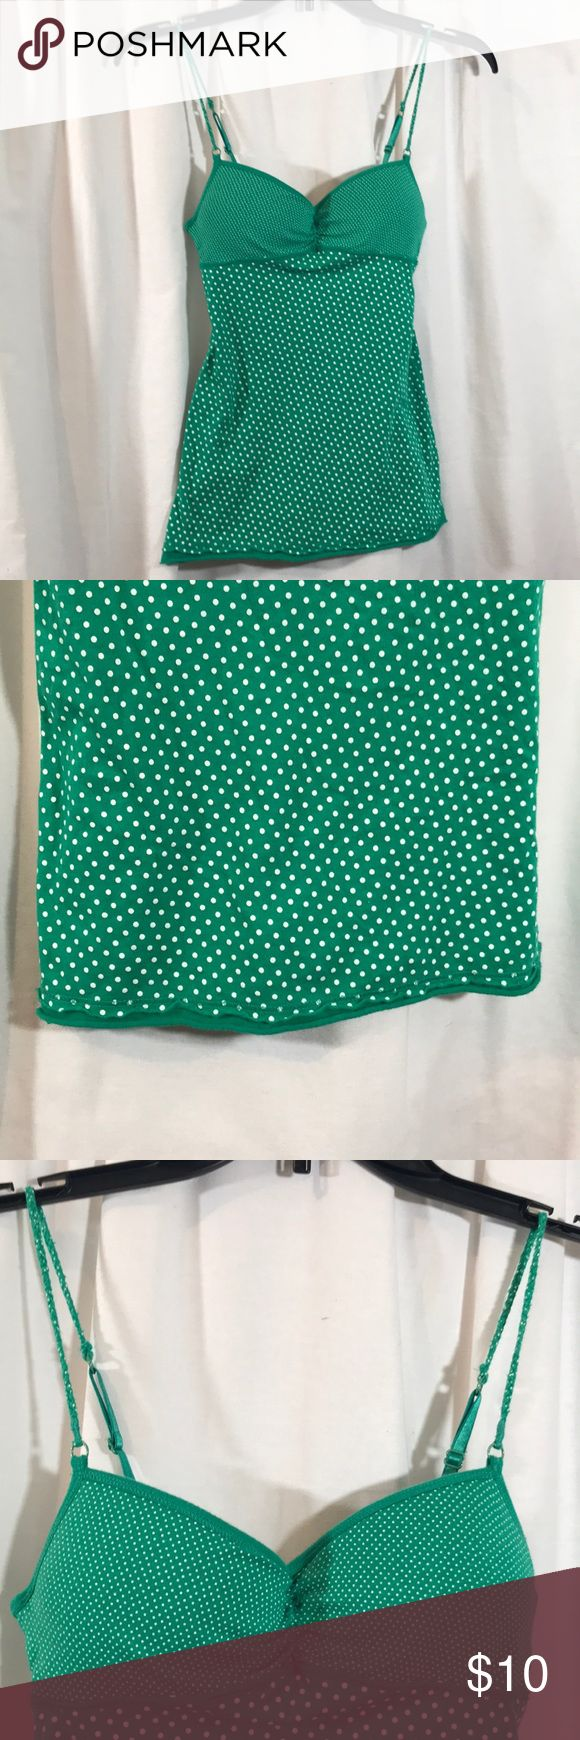 Small Green Cami Top Excellent condition 2️⃣4️⃣ Energie Tops Camisoles